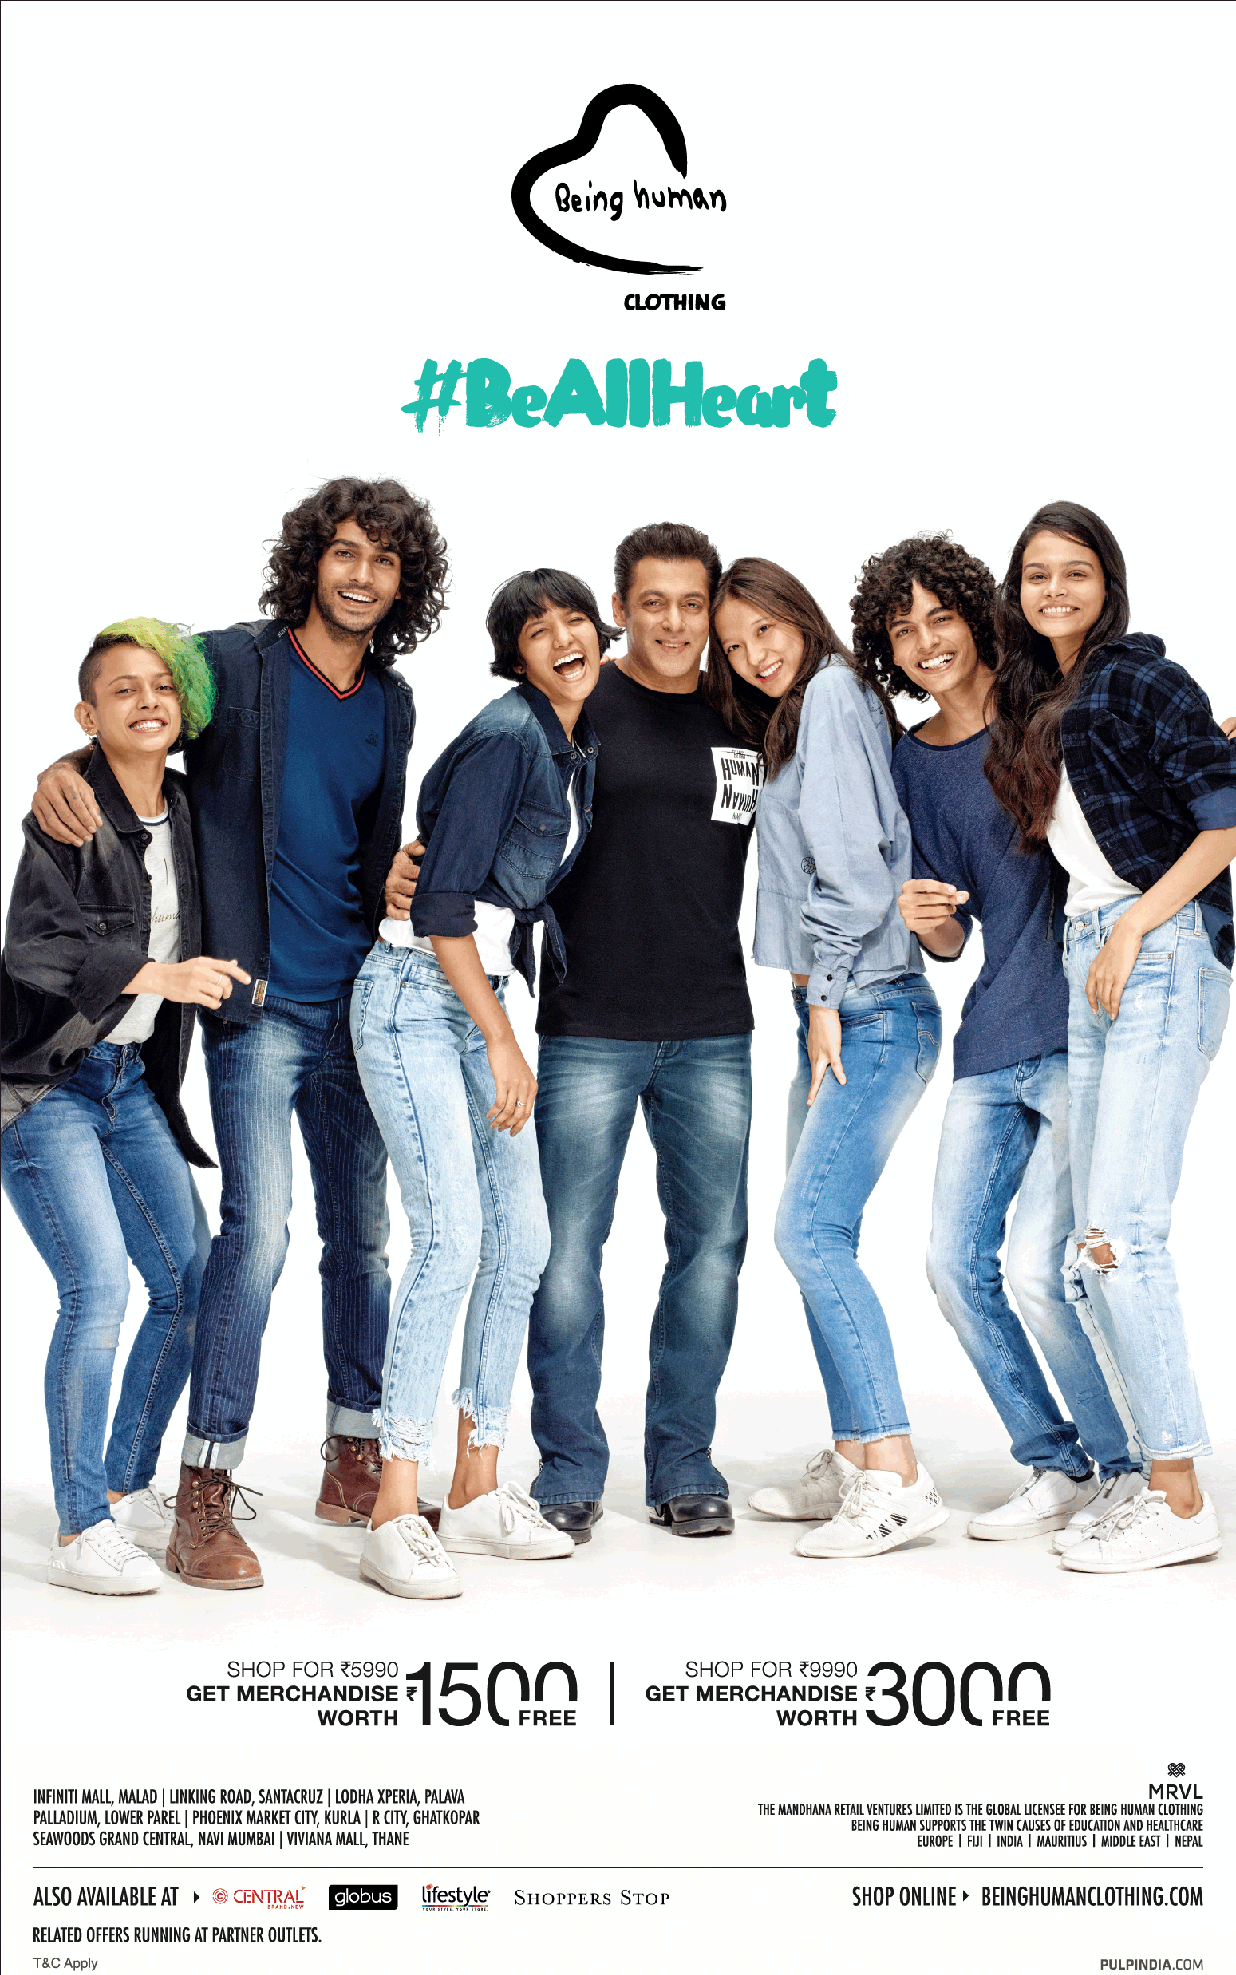 Being Human Clothing Be All Heart Featuring Salman Khan Ad Advert